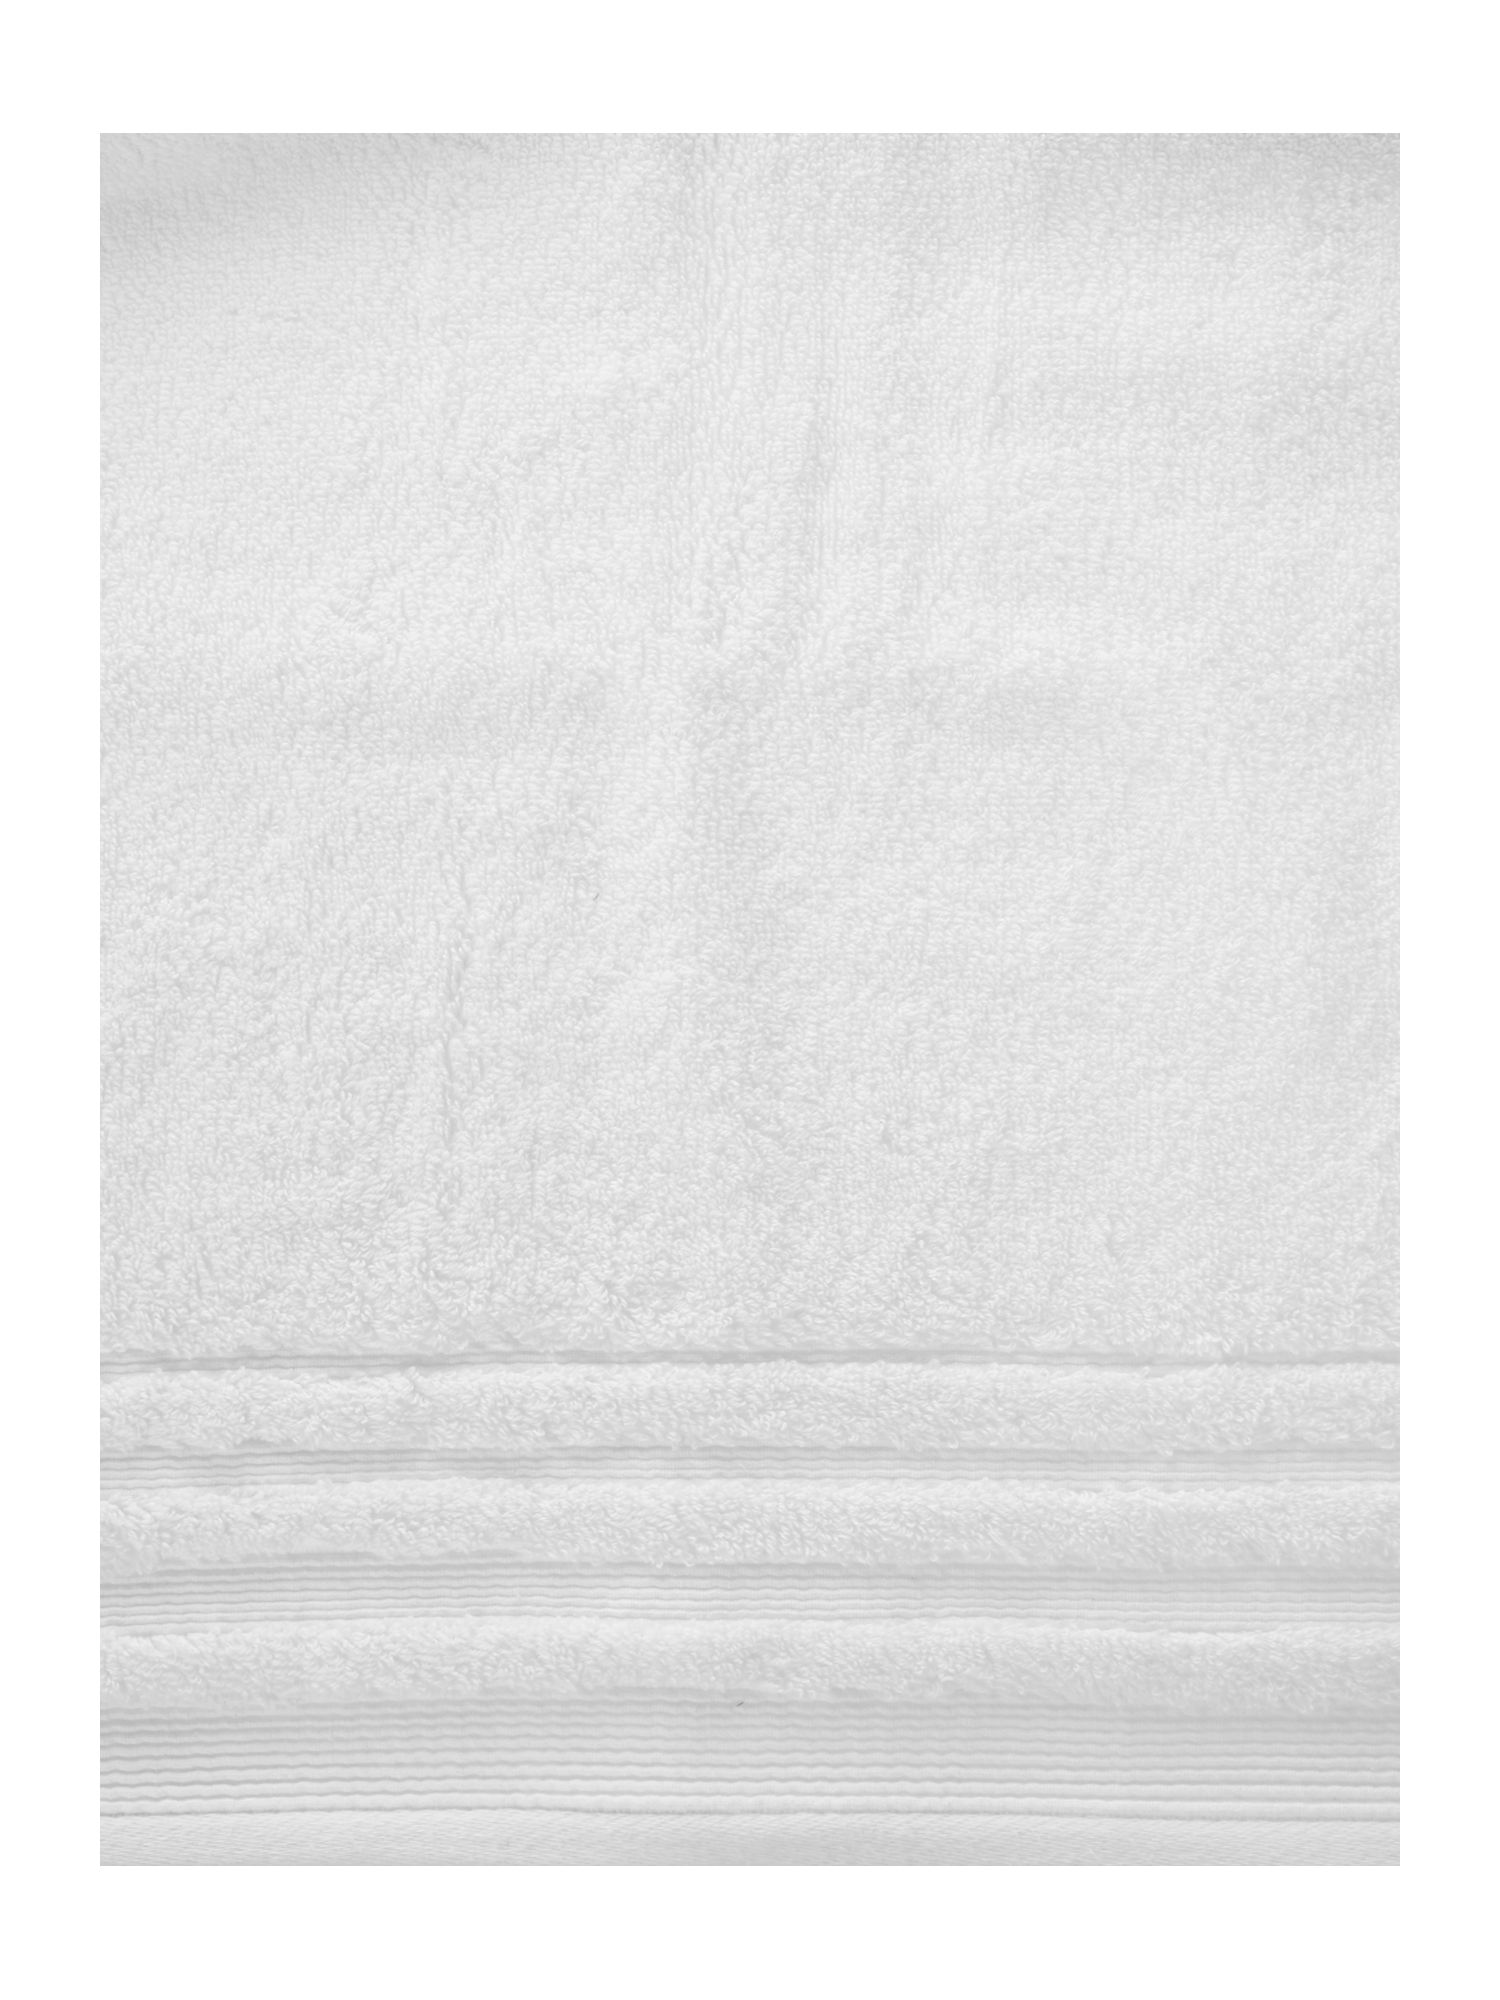 Classic luxury towel range in white